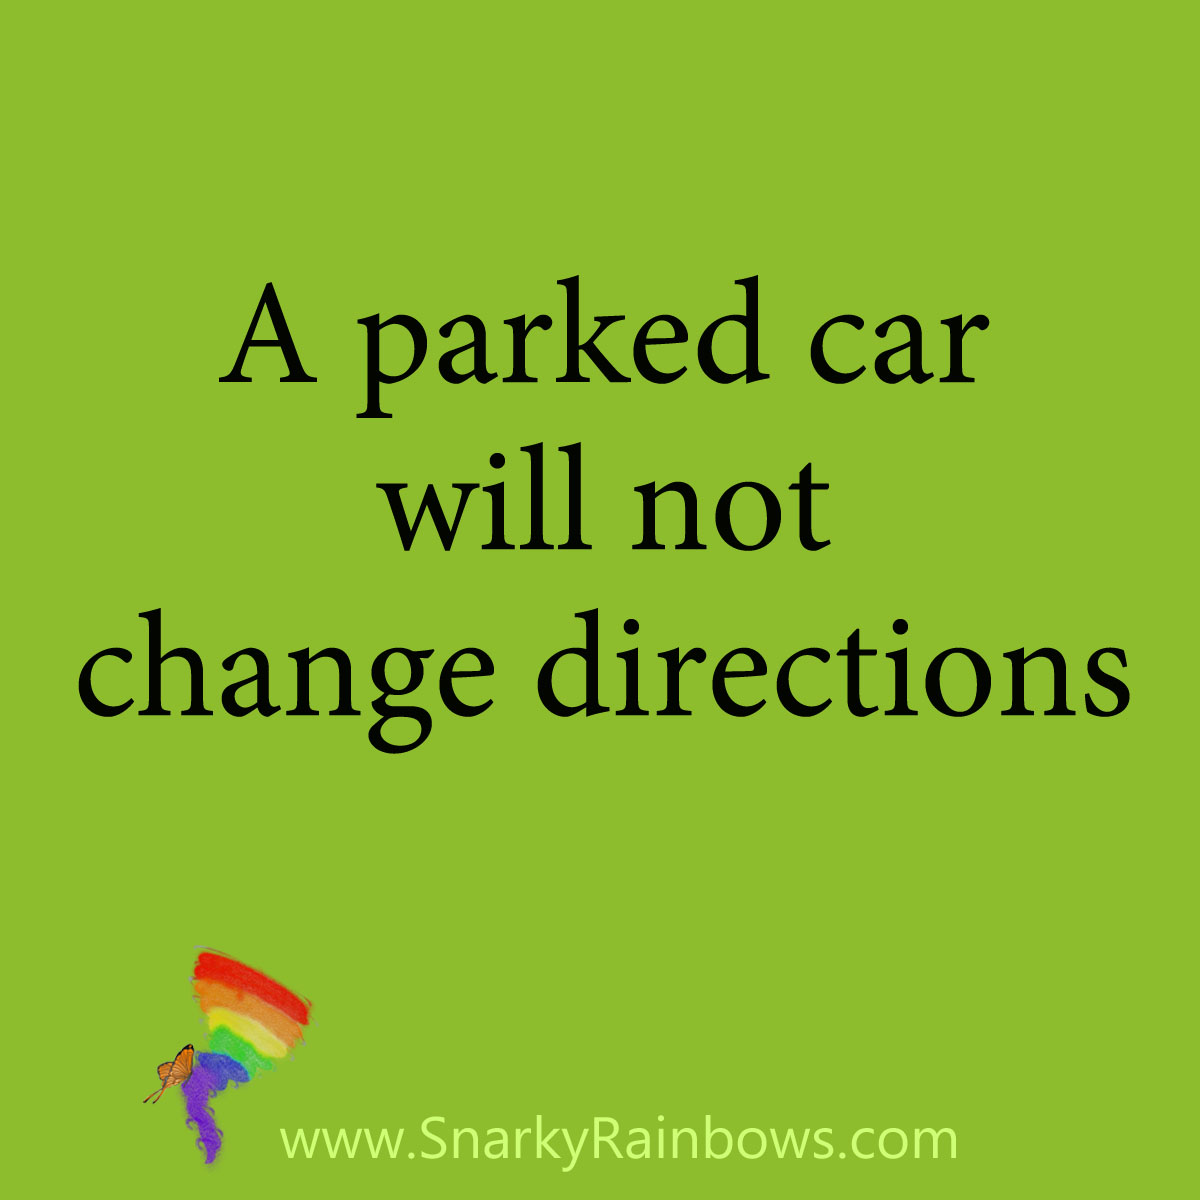 quote - a parked car will not change directions